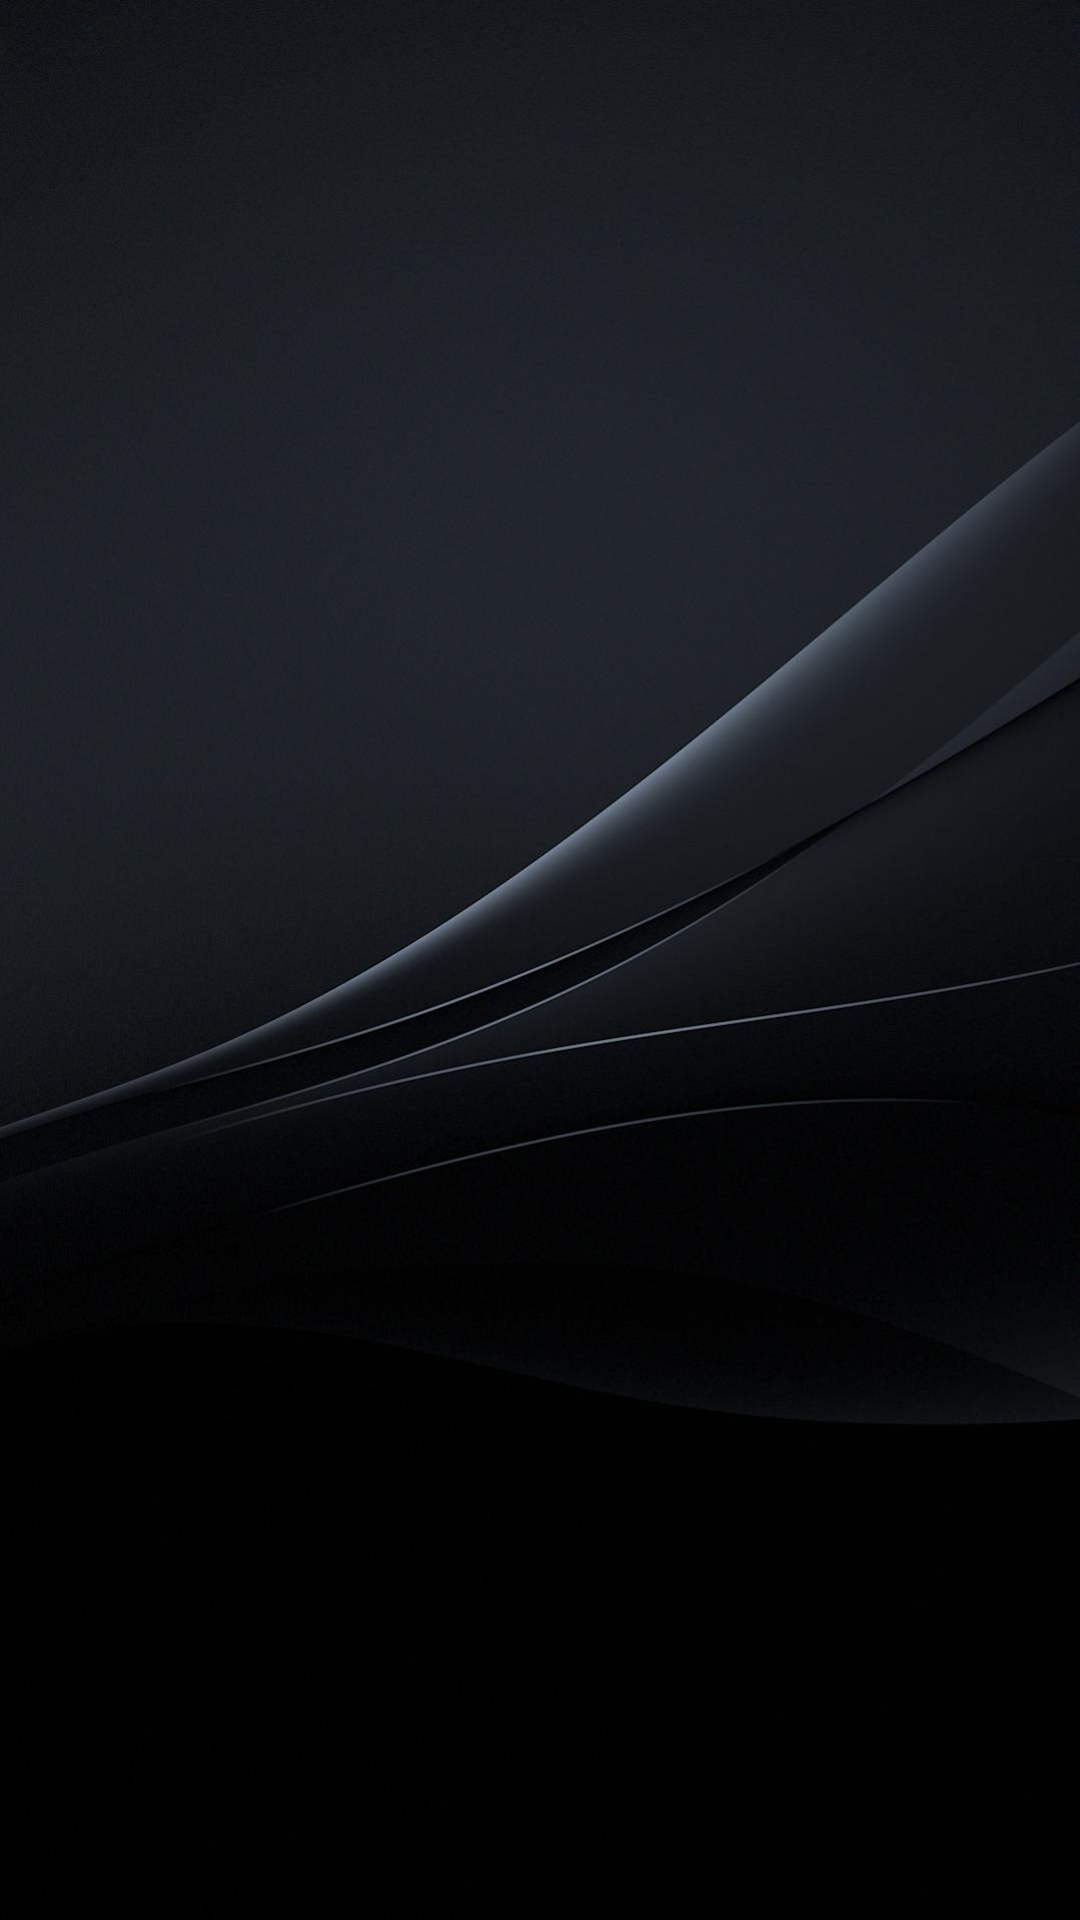 Black Abstract Iphone Wallpaper